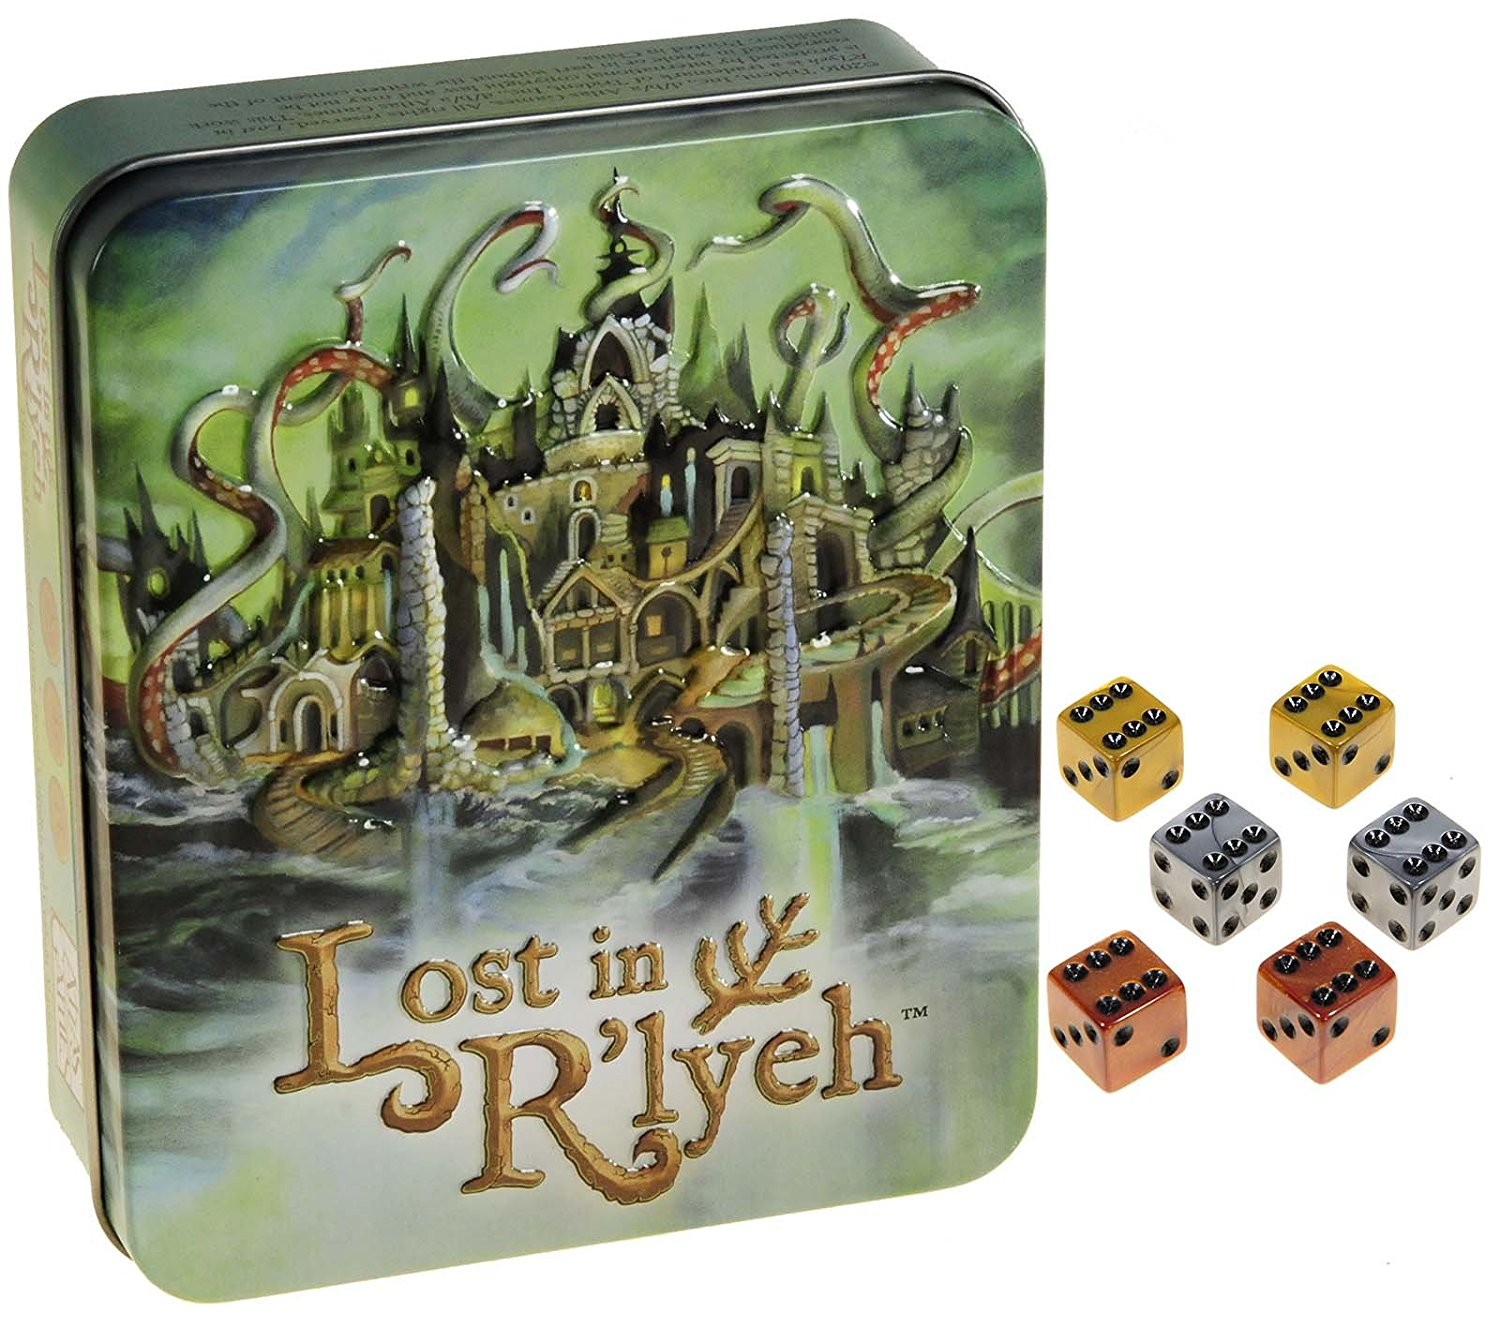 Lost in R'lyeh Card Game (Call of Cthulhu) in Tin _ Bonus Set of 2 Gold, 2 Silver, and 2 Bronze Swirl d6 Game Dice _ Bundled Items